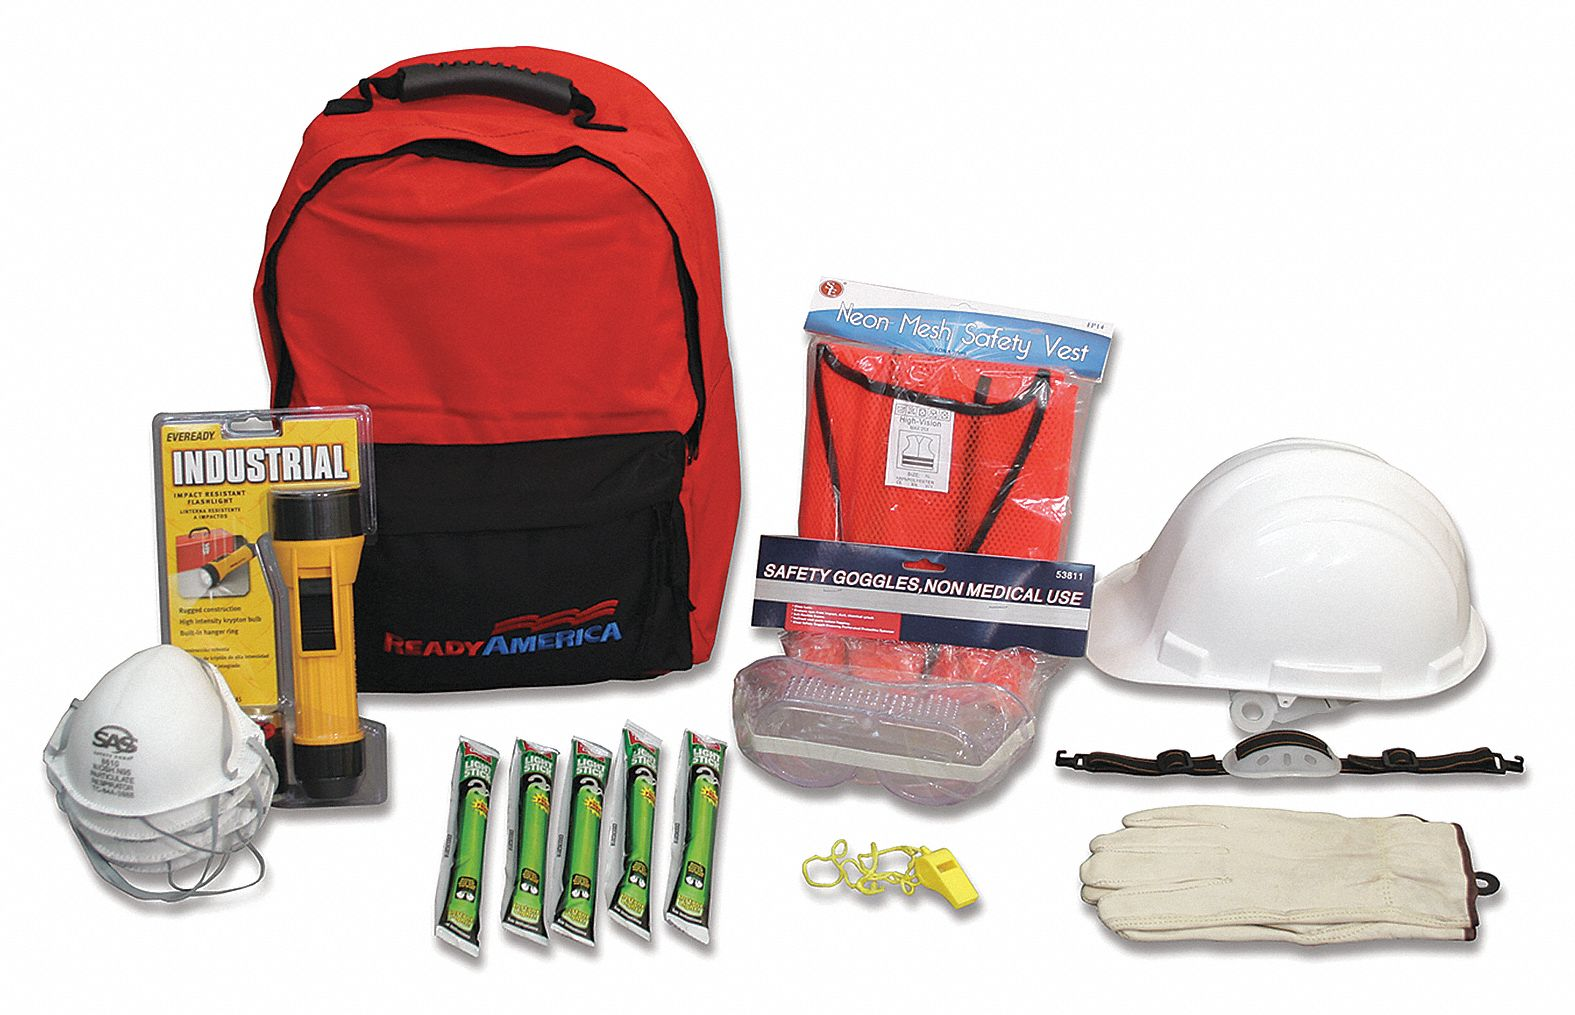 Manager Emergency  Kit,  Number of Components 19,  People Served 25,  Red/Black,  16 in Height